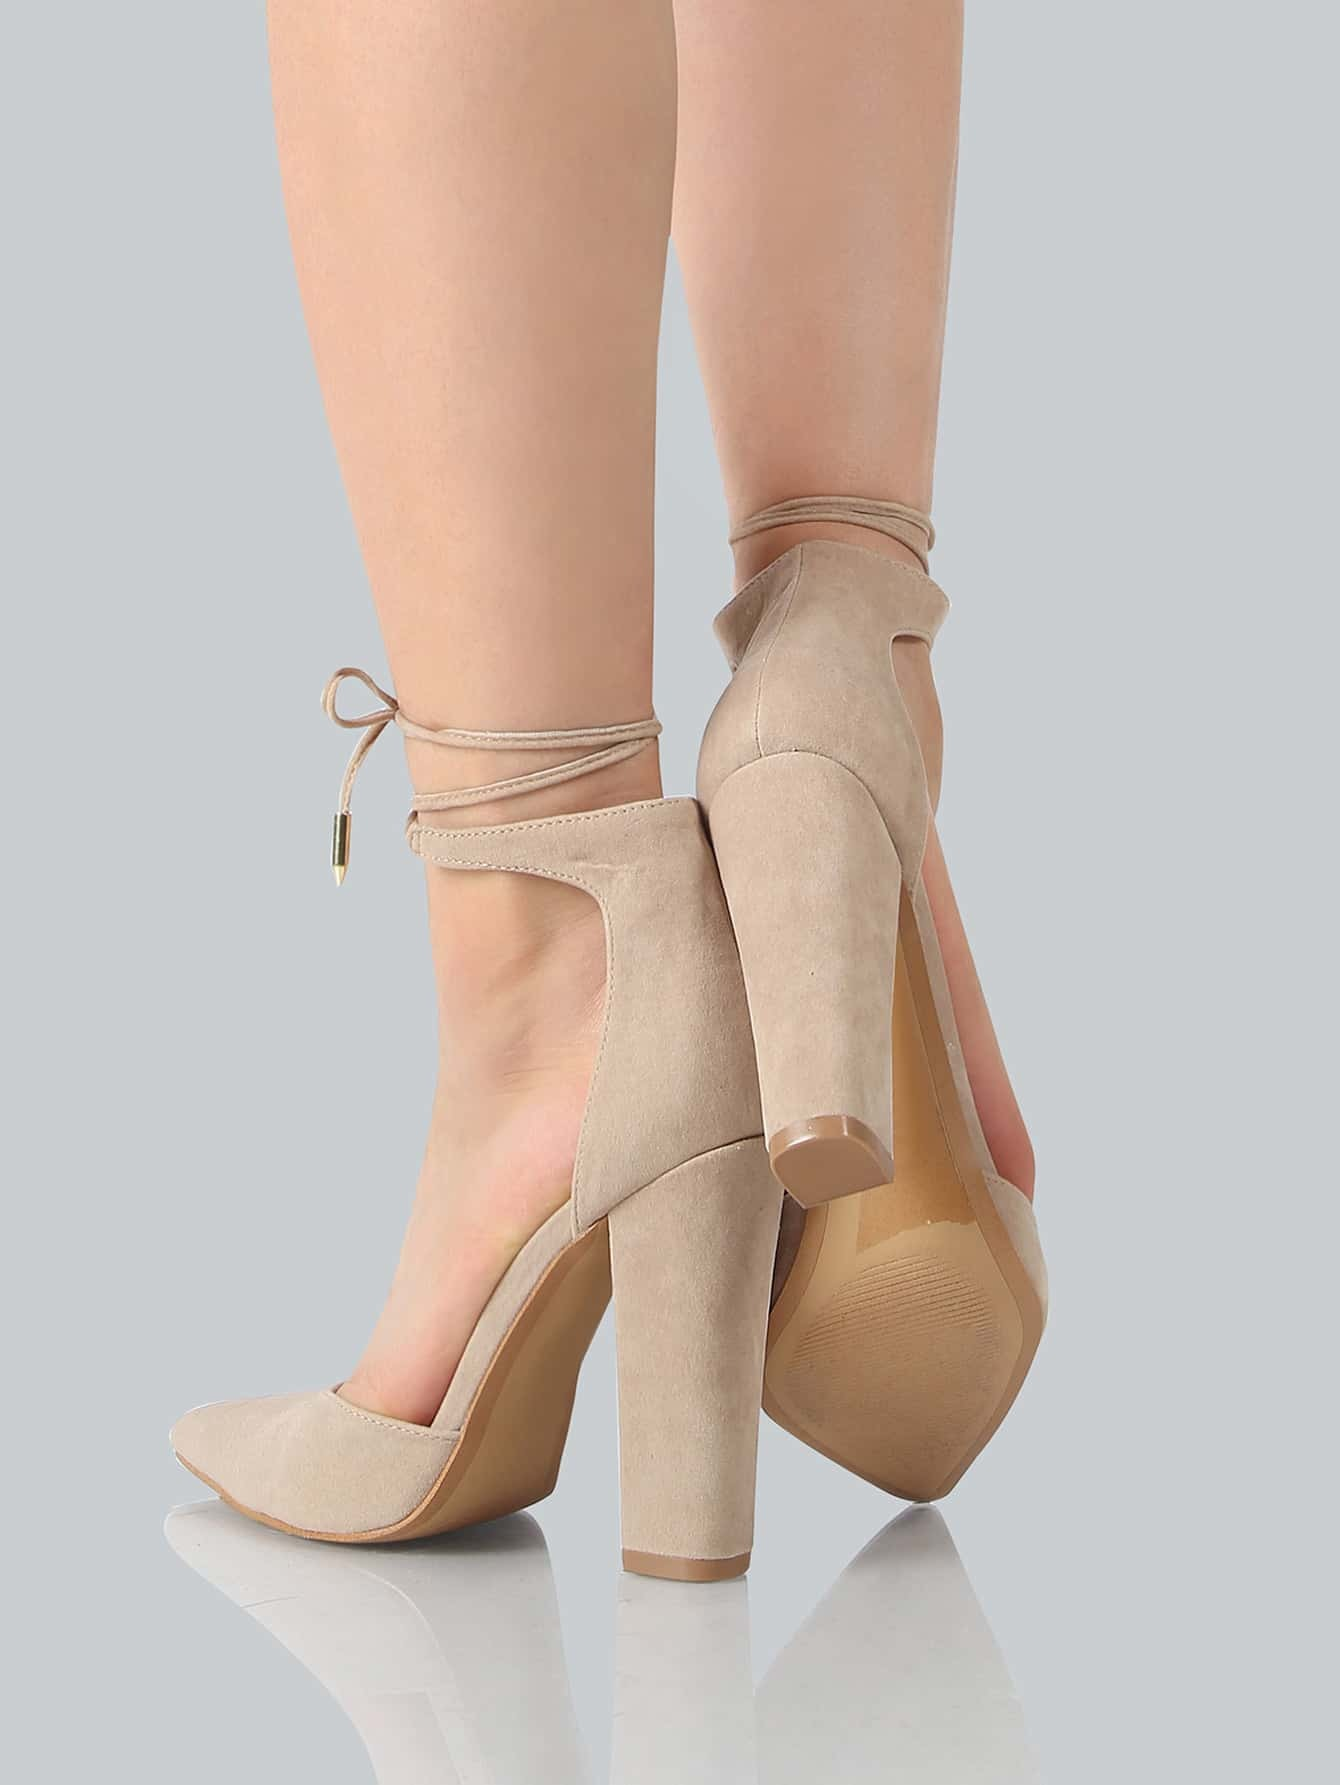 Nude Pointe Shoes